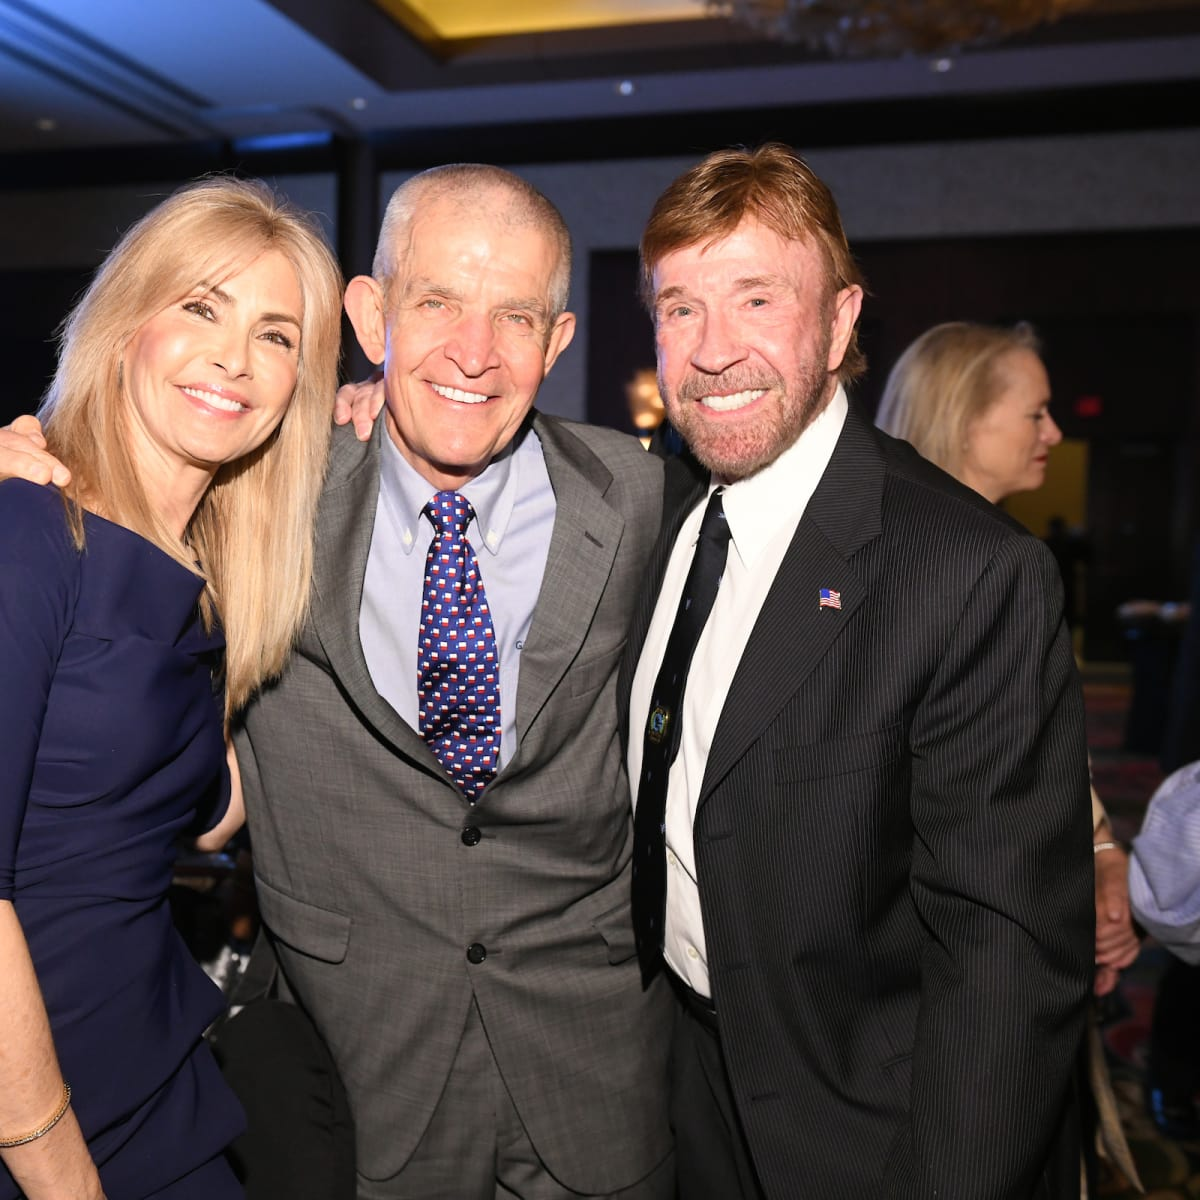 Houston Chuck Norris Kickstart Gena Norris, Jim McIngvale and Cuck Norris